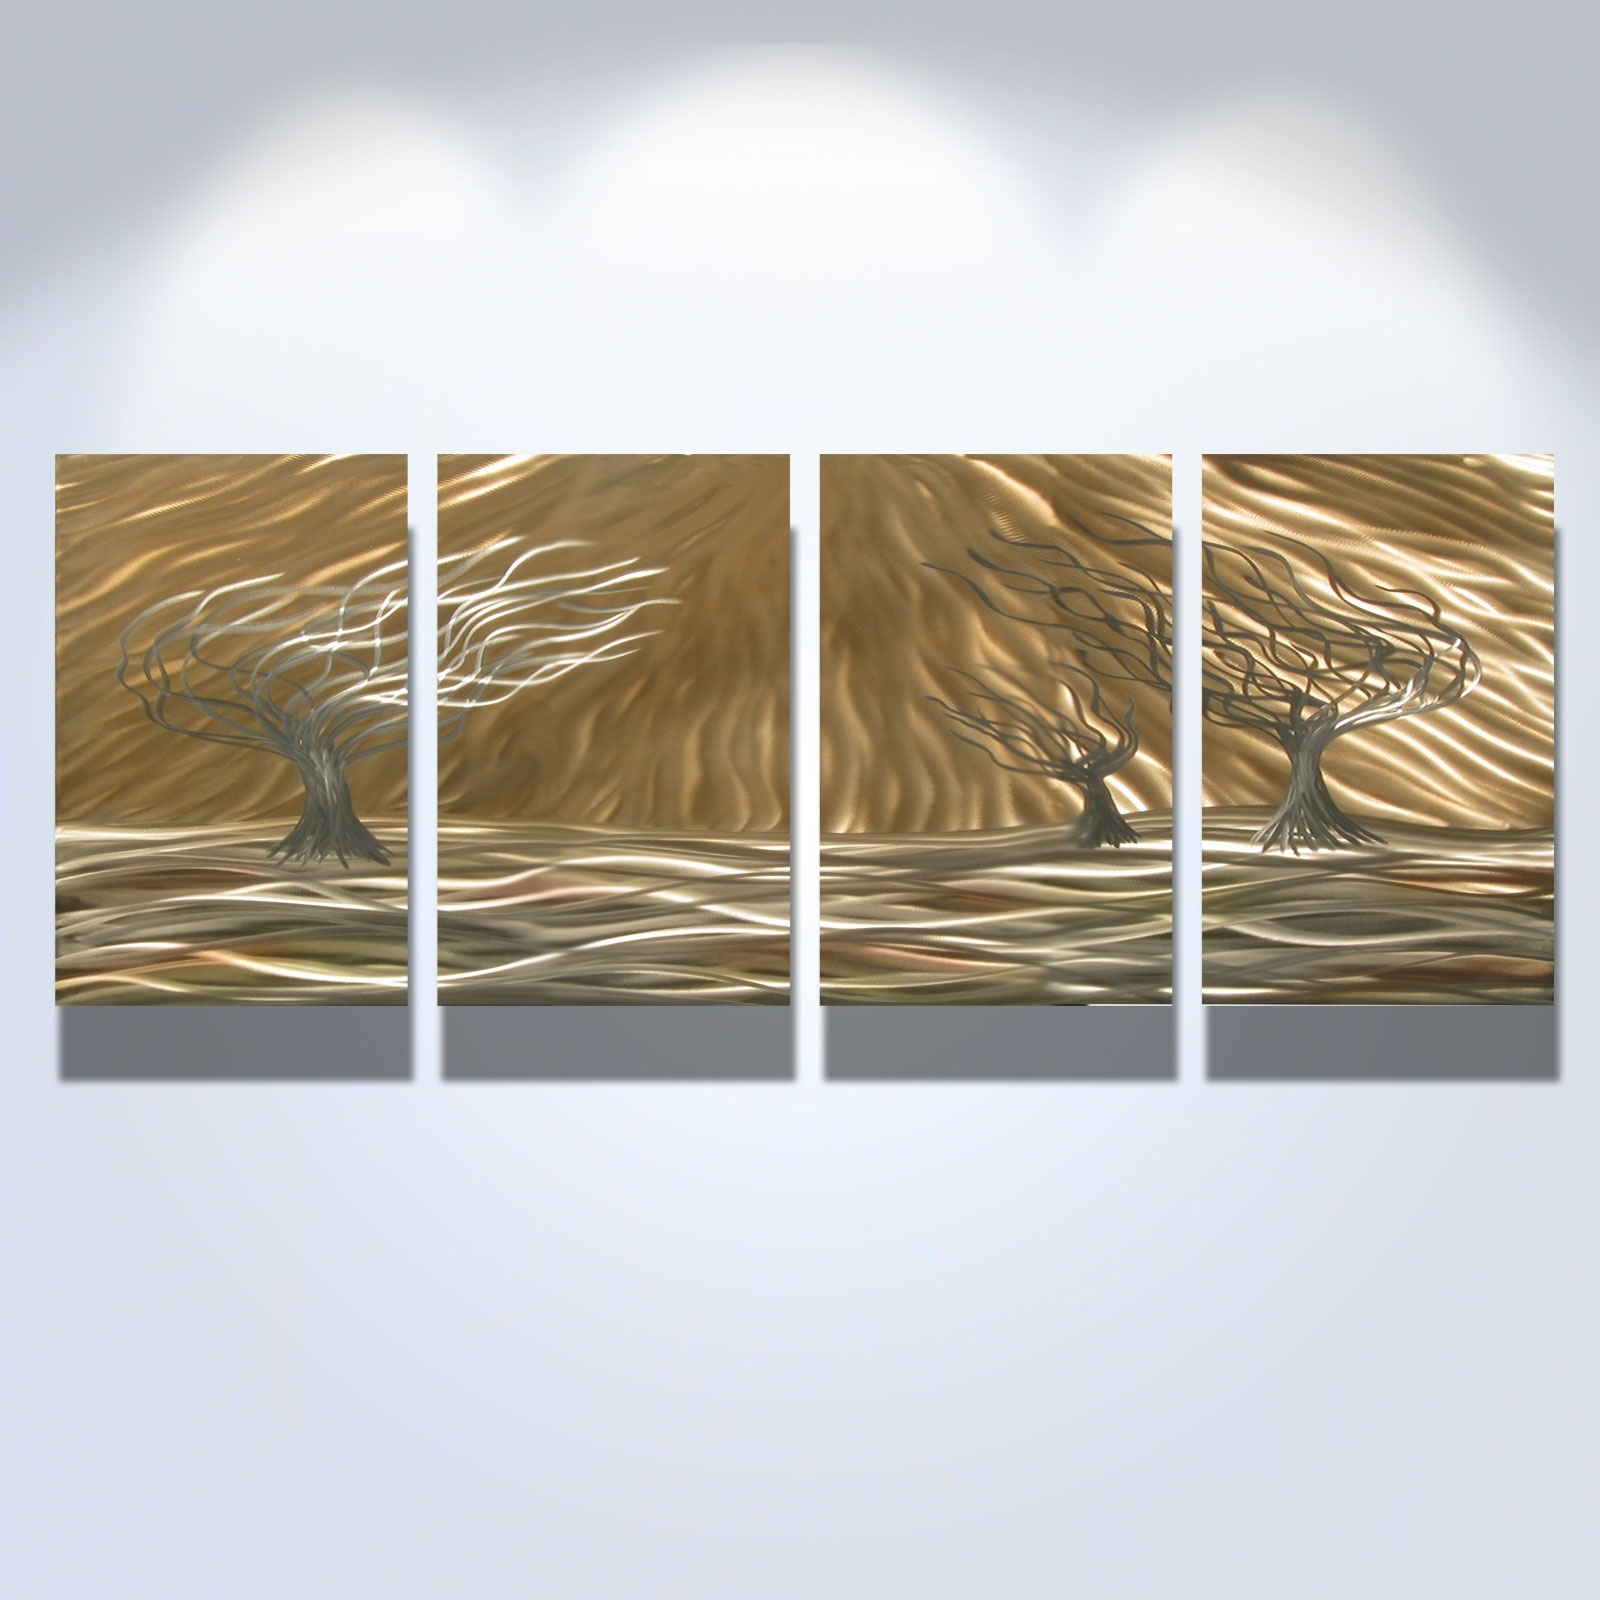 3 Trees 4 Panel – Abstract Metal Wall Art Contemporary Modern Pertaining To Best And Newest Abstract Metal Wall Art Panels (View 3 of 20)